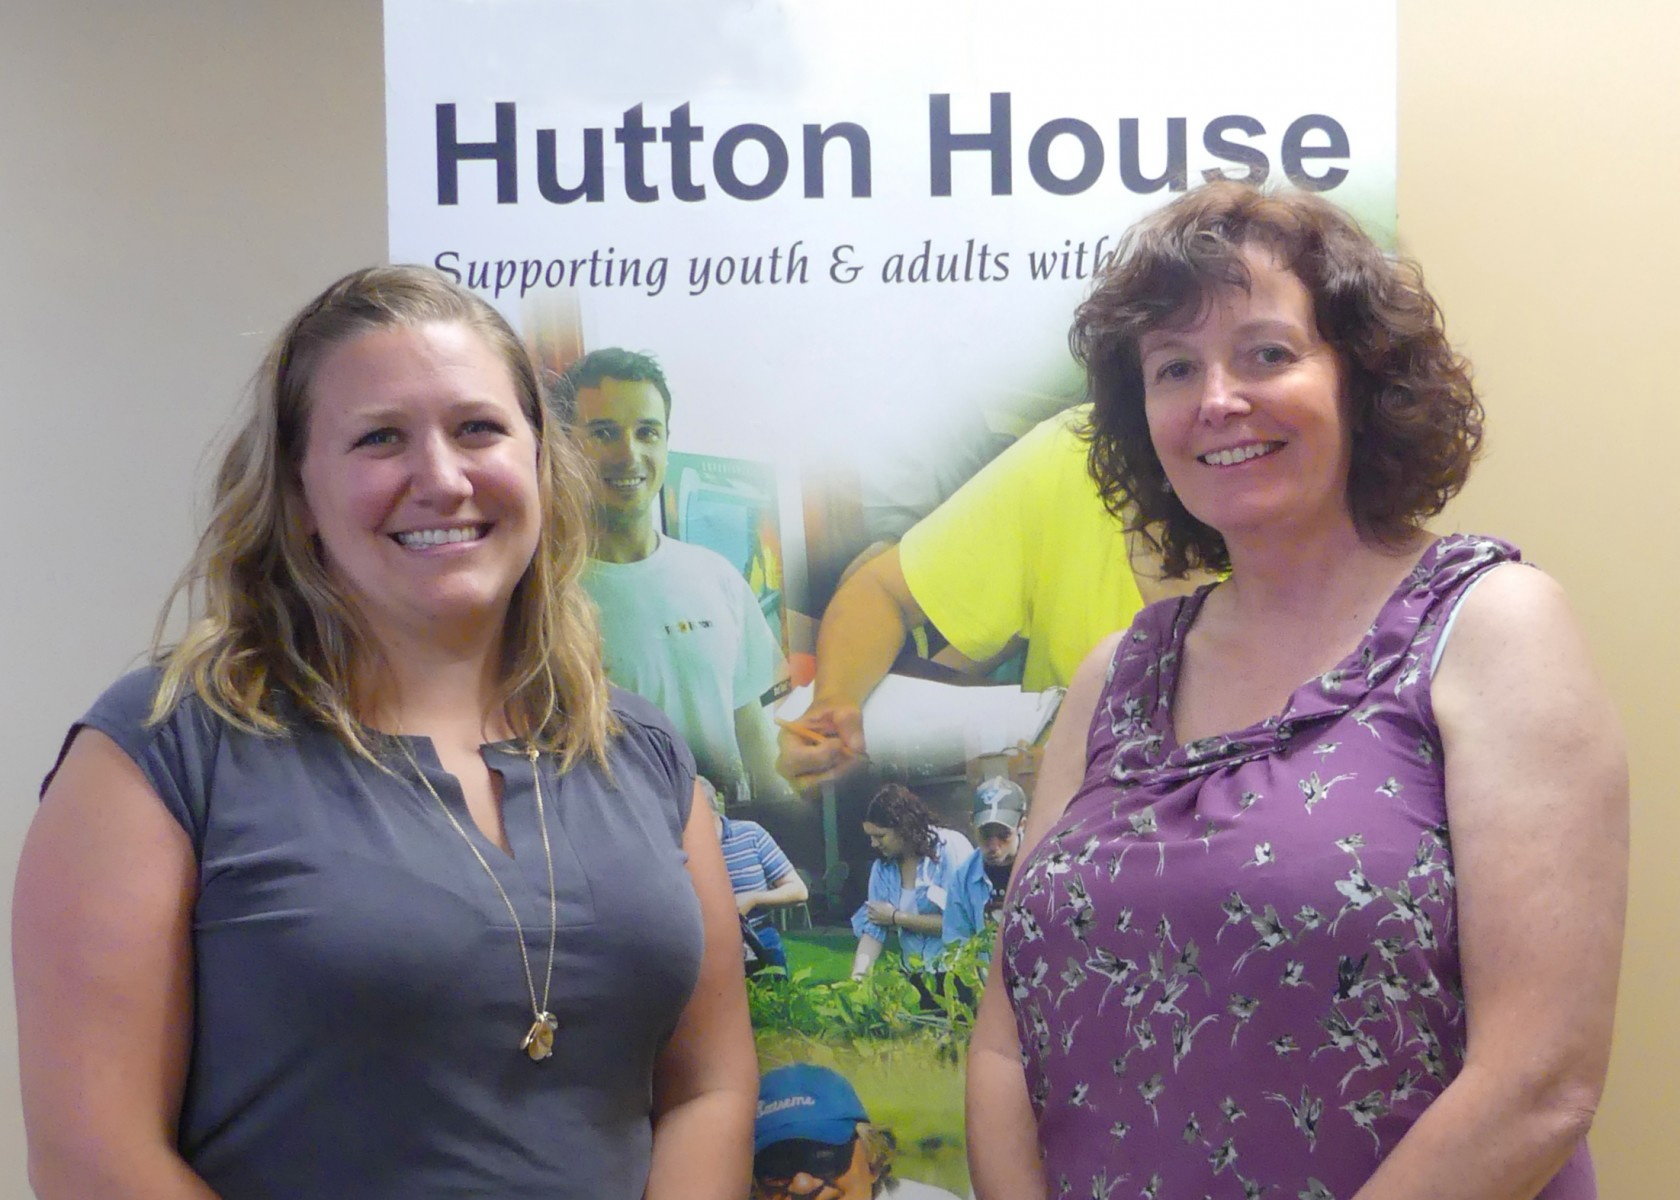 Fanshawe researcher Carmen Hall and Hutton House ED Jeanette Dutot